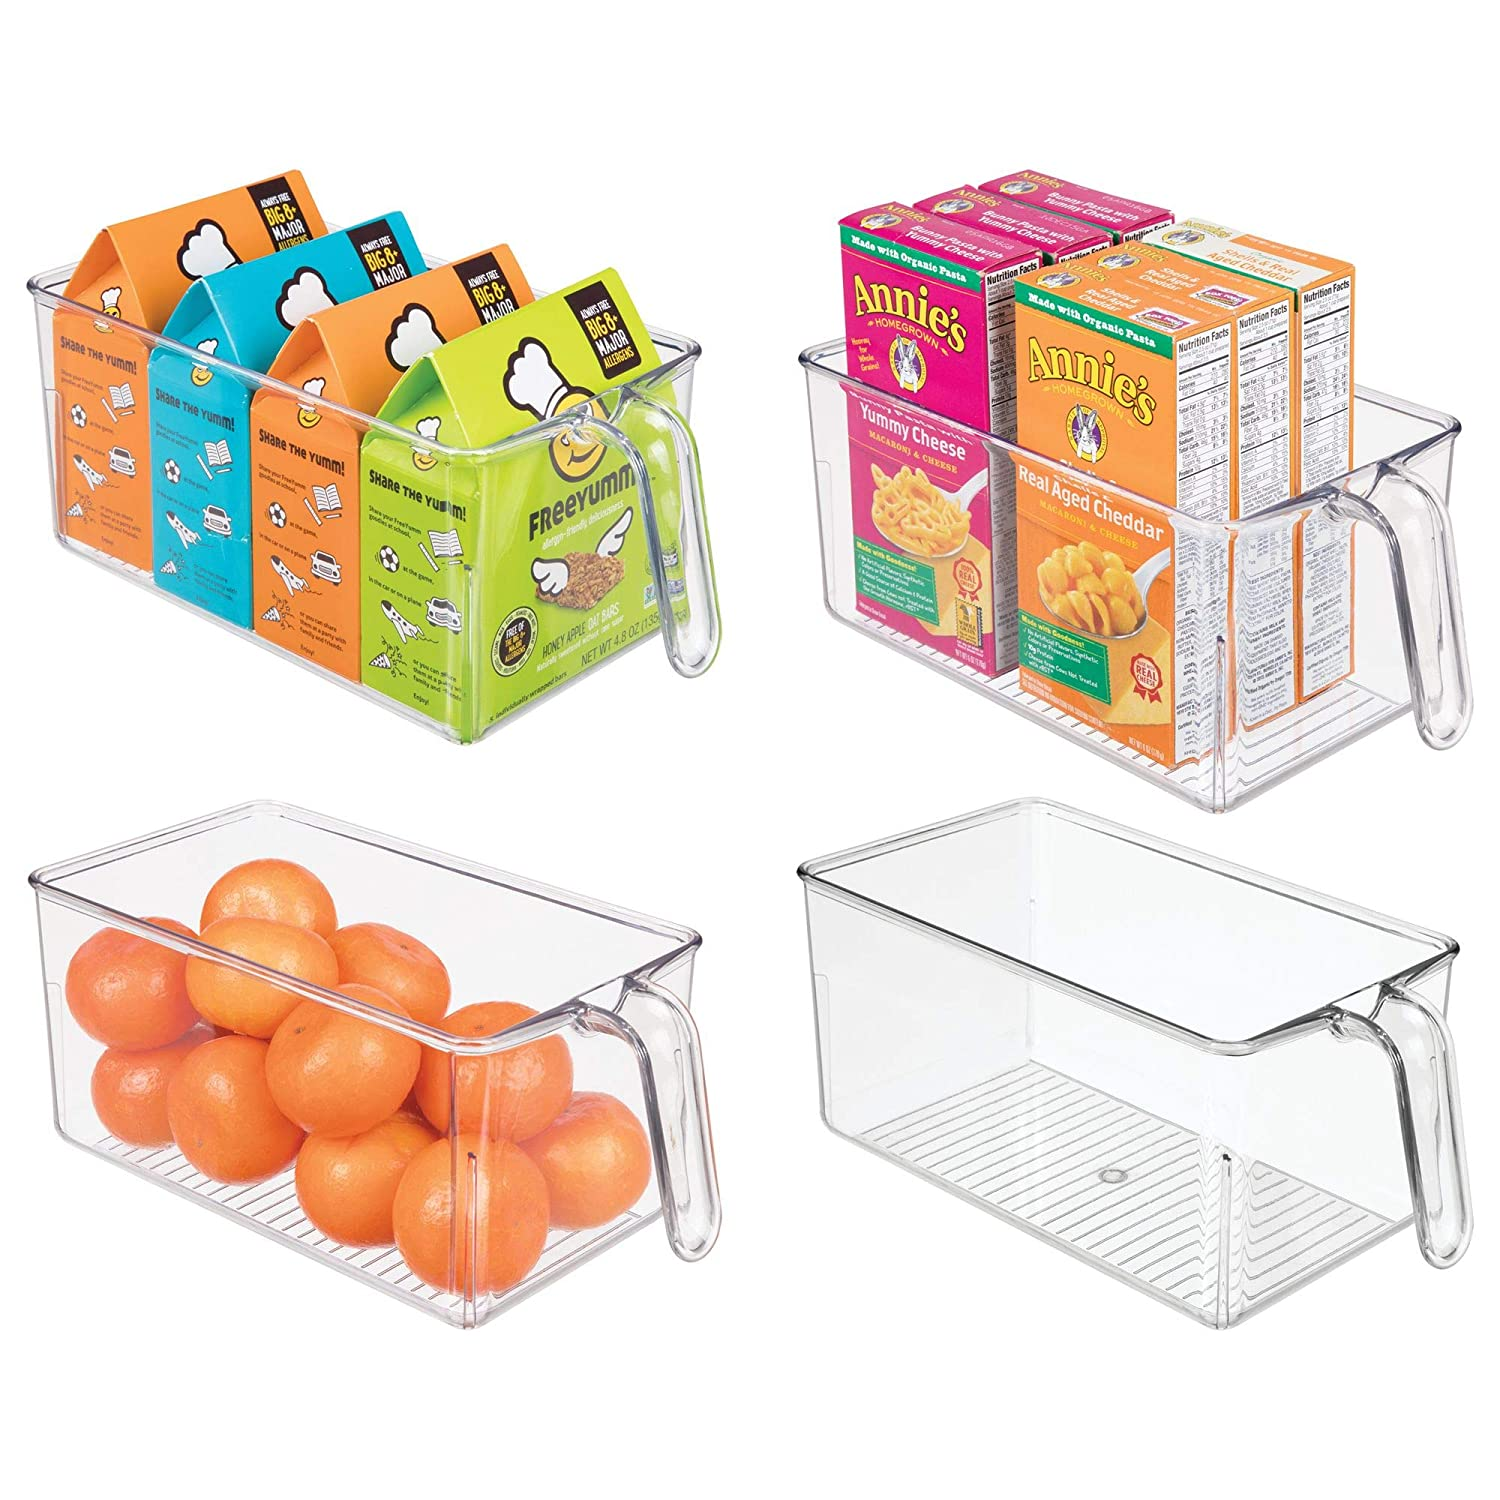 mDesign Plastic Kitchen Pantry Cabinet Refrigerator Storage Organizer Bin Holder with Front Handle - for Organizing Individual Packets, Snacks, Produce, Pasta - BPA Free - Medium, 4 Pack - Clear